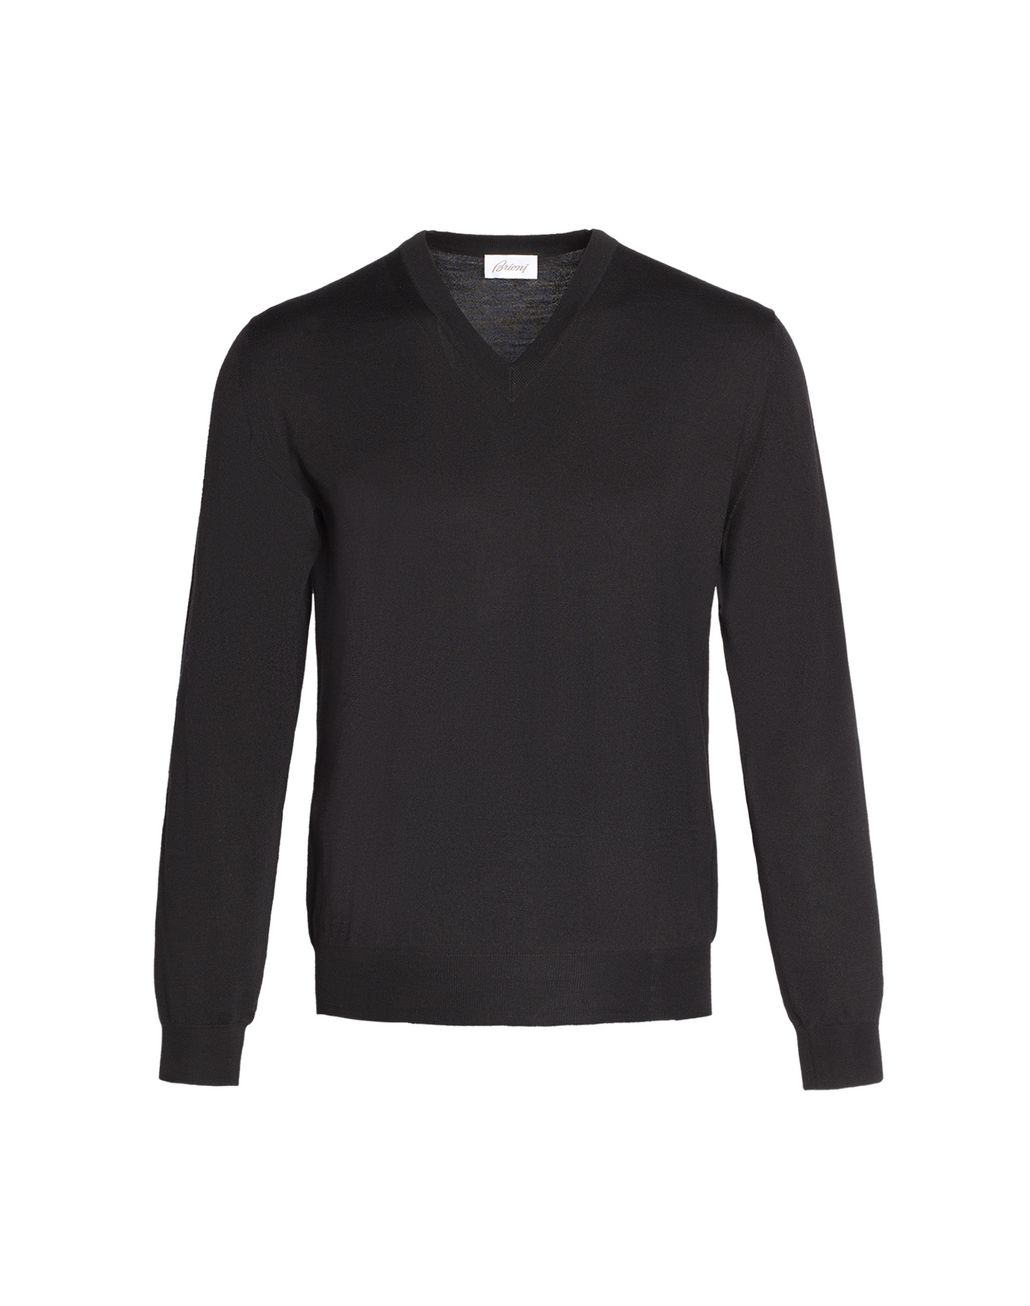 BRIONI 'Essential' Black V-Neck Sweater Knitwear [*** pickupInStoreShippingNotGuaranteed_info ***] f